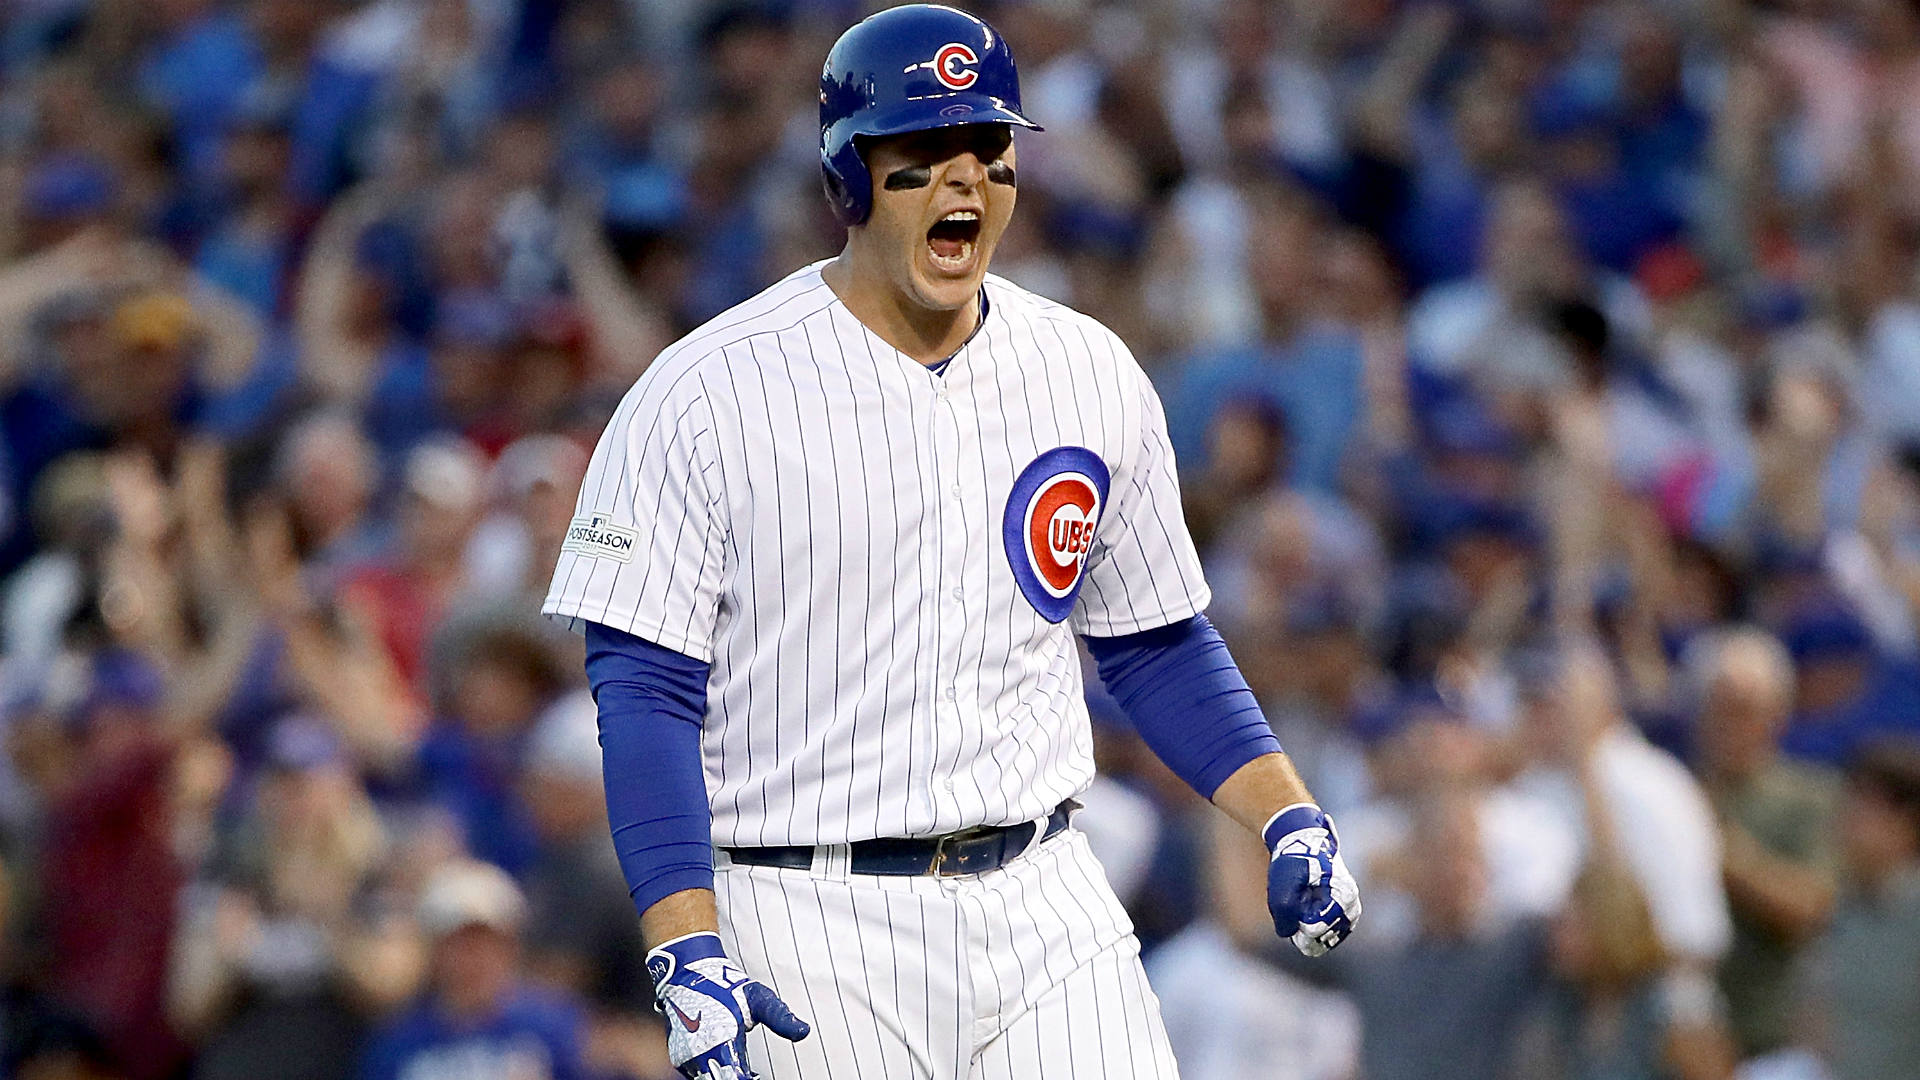 NLDS Game 2, Cubs vs. Nationals: highlights, recap, and more